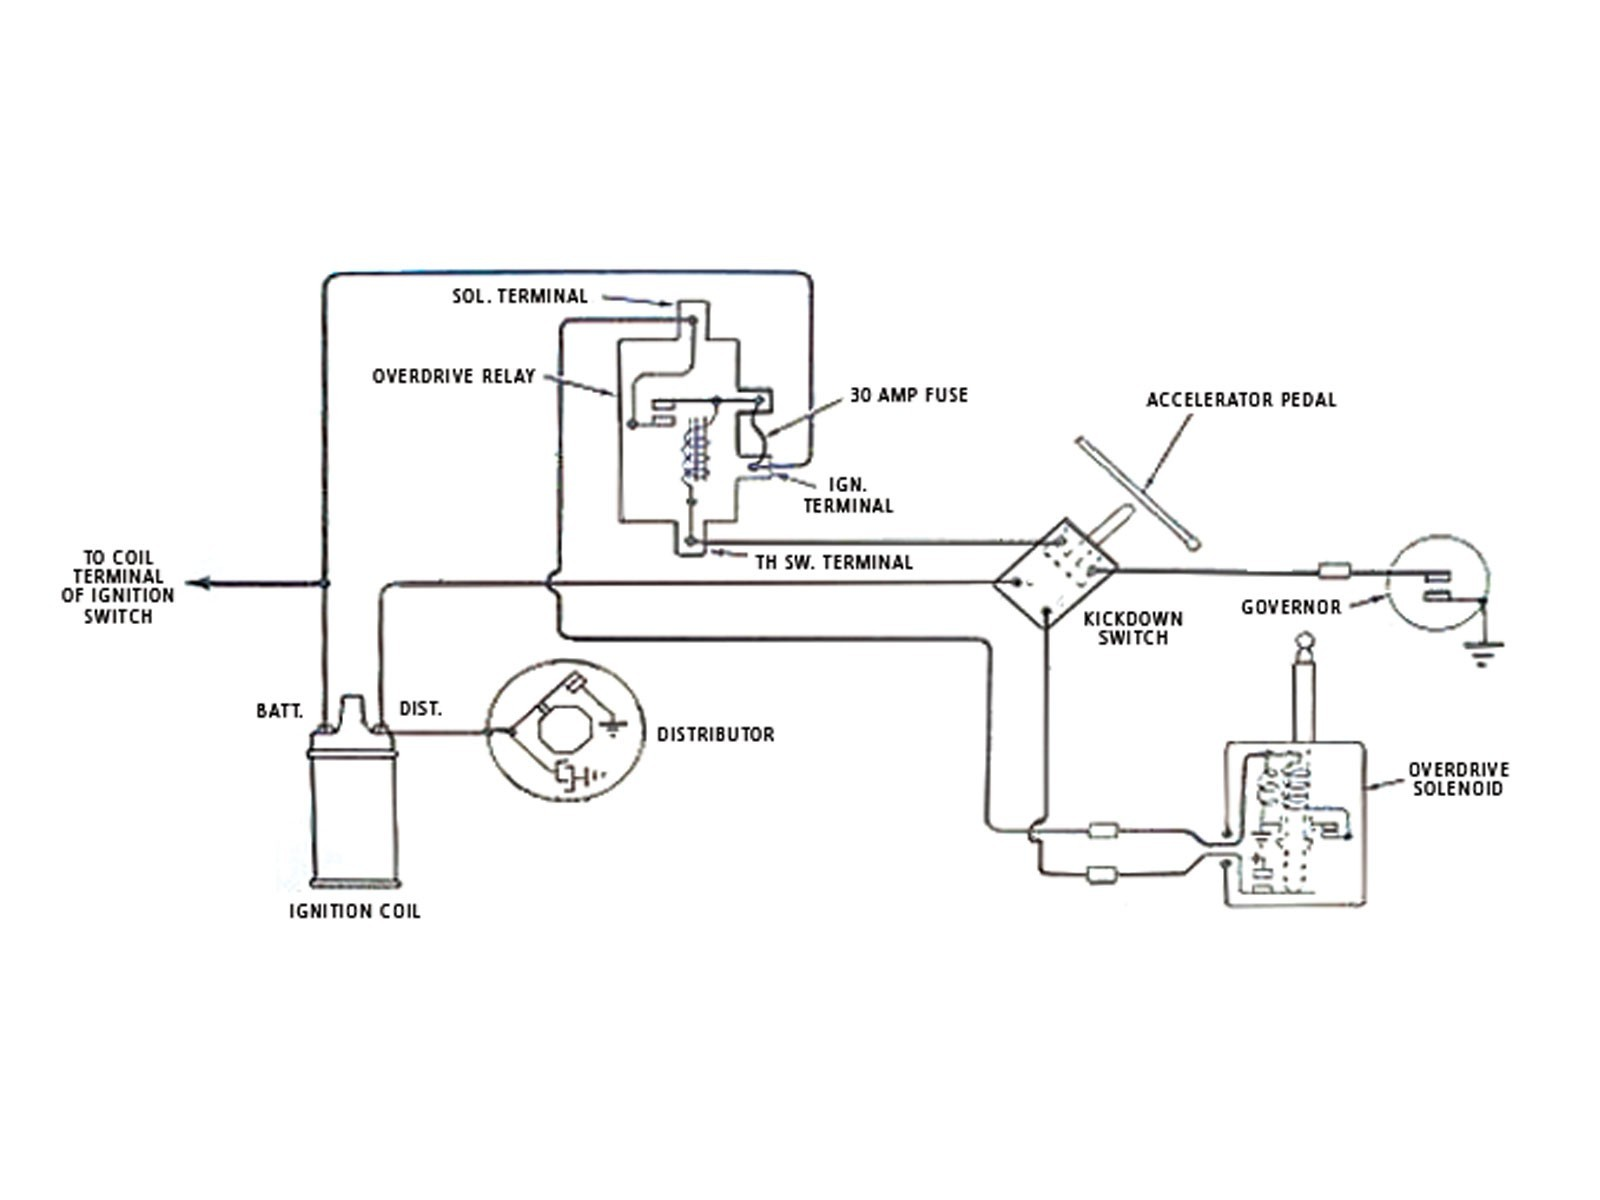 Basic Ignition Wiring Diagram Ignition Coil Wiring Diagram New Basic Od Troubleshooting Chevytalk